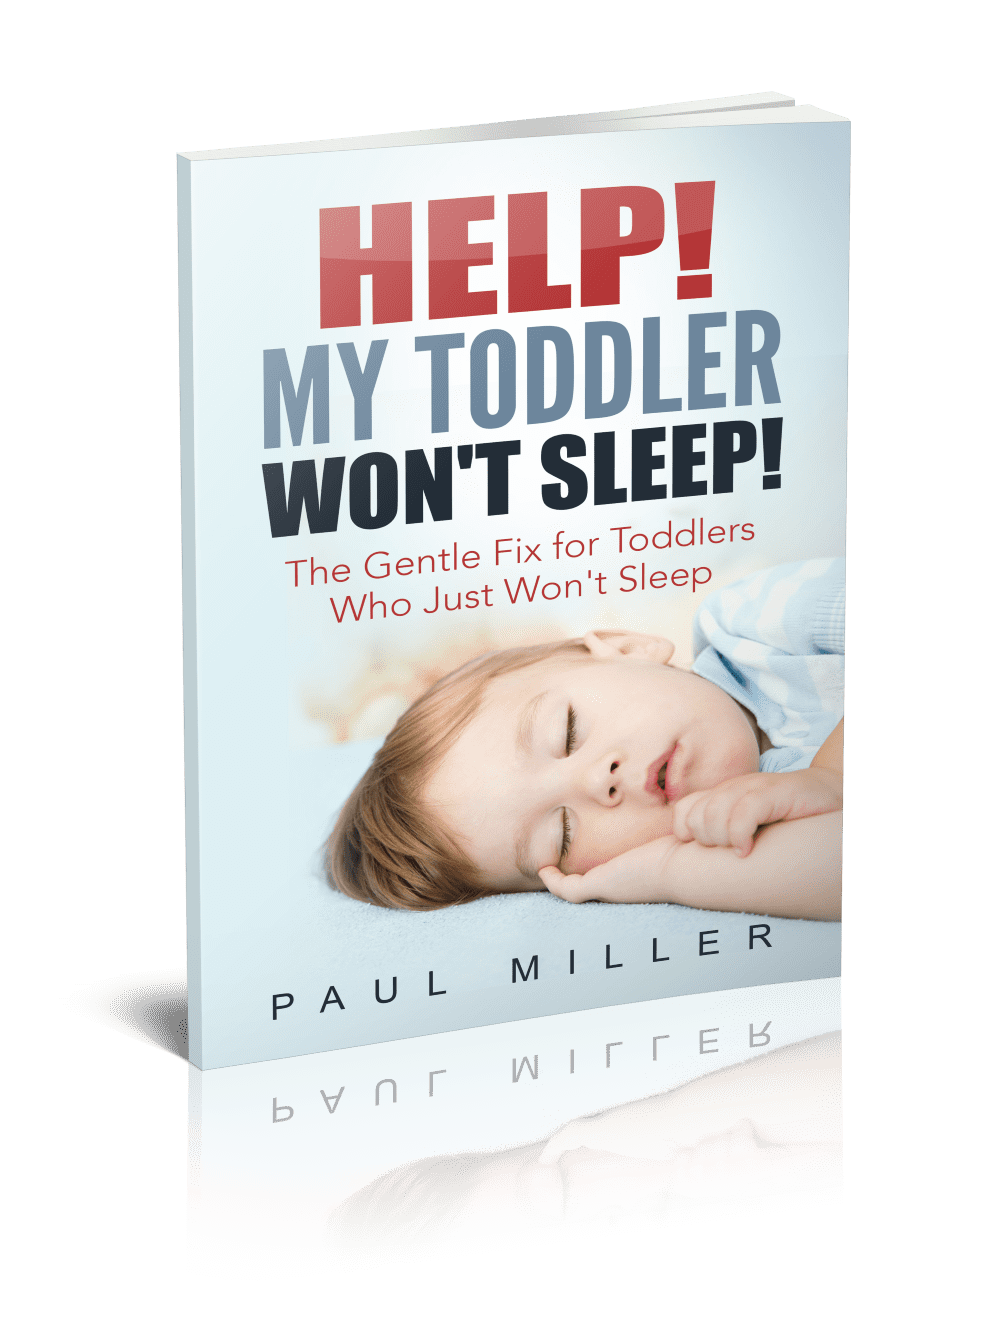 Book cover for HELP! My Toddler Won't Sleep!